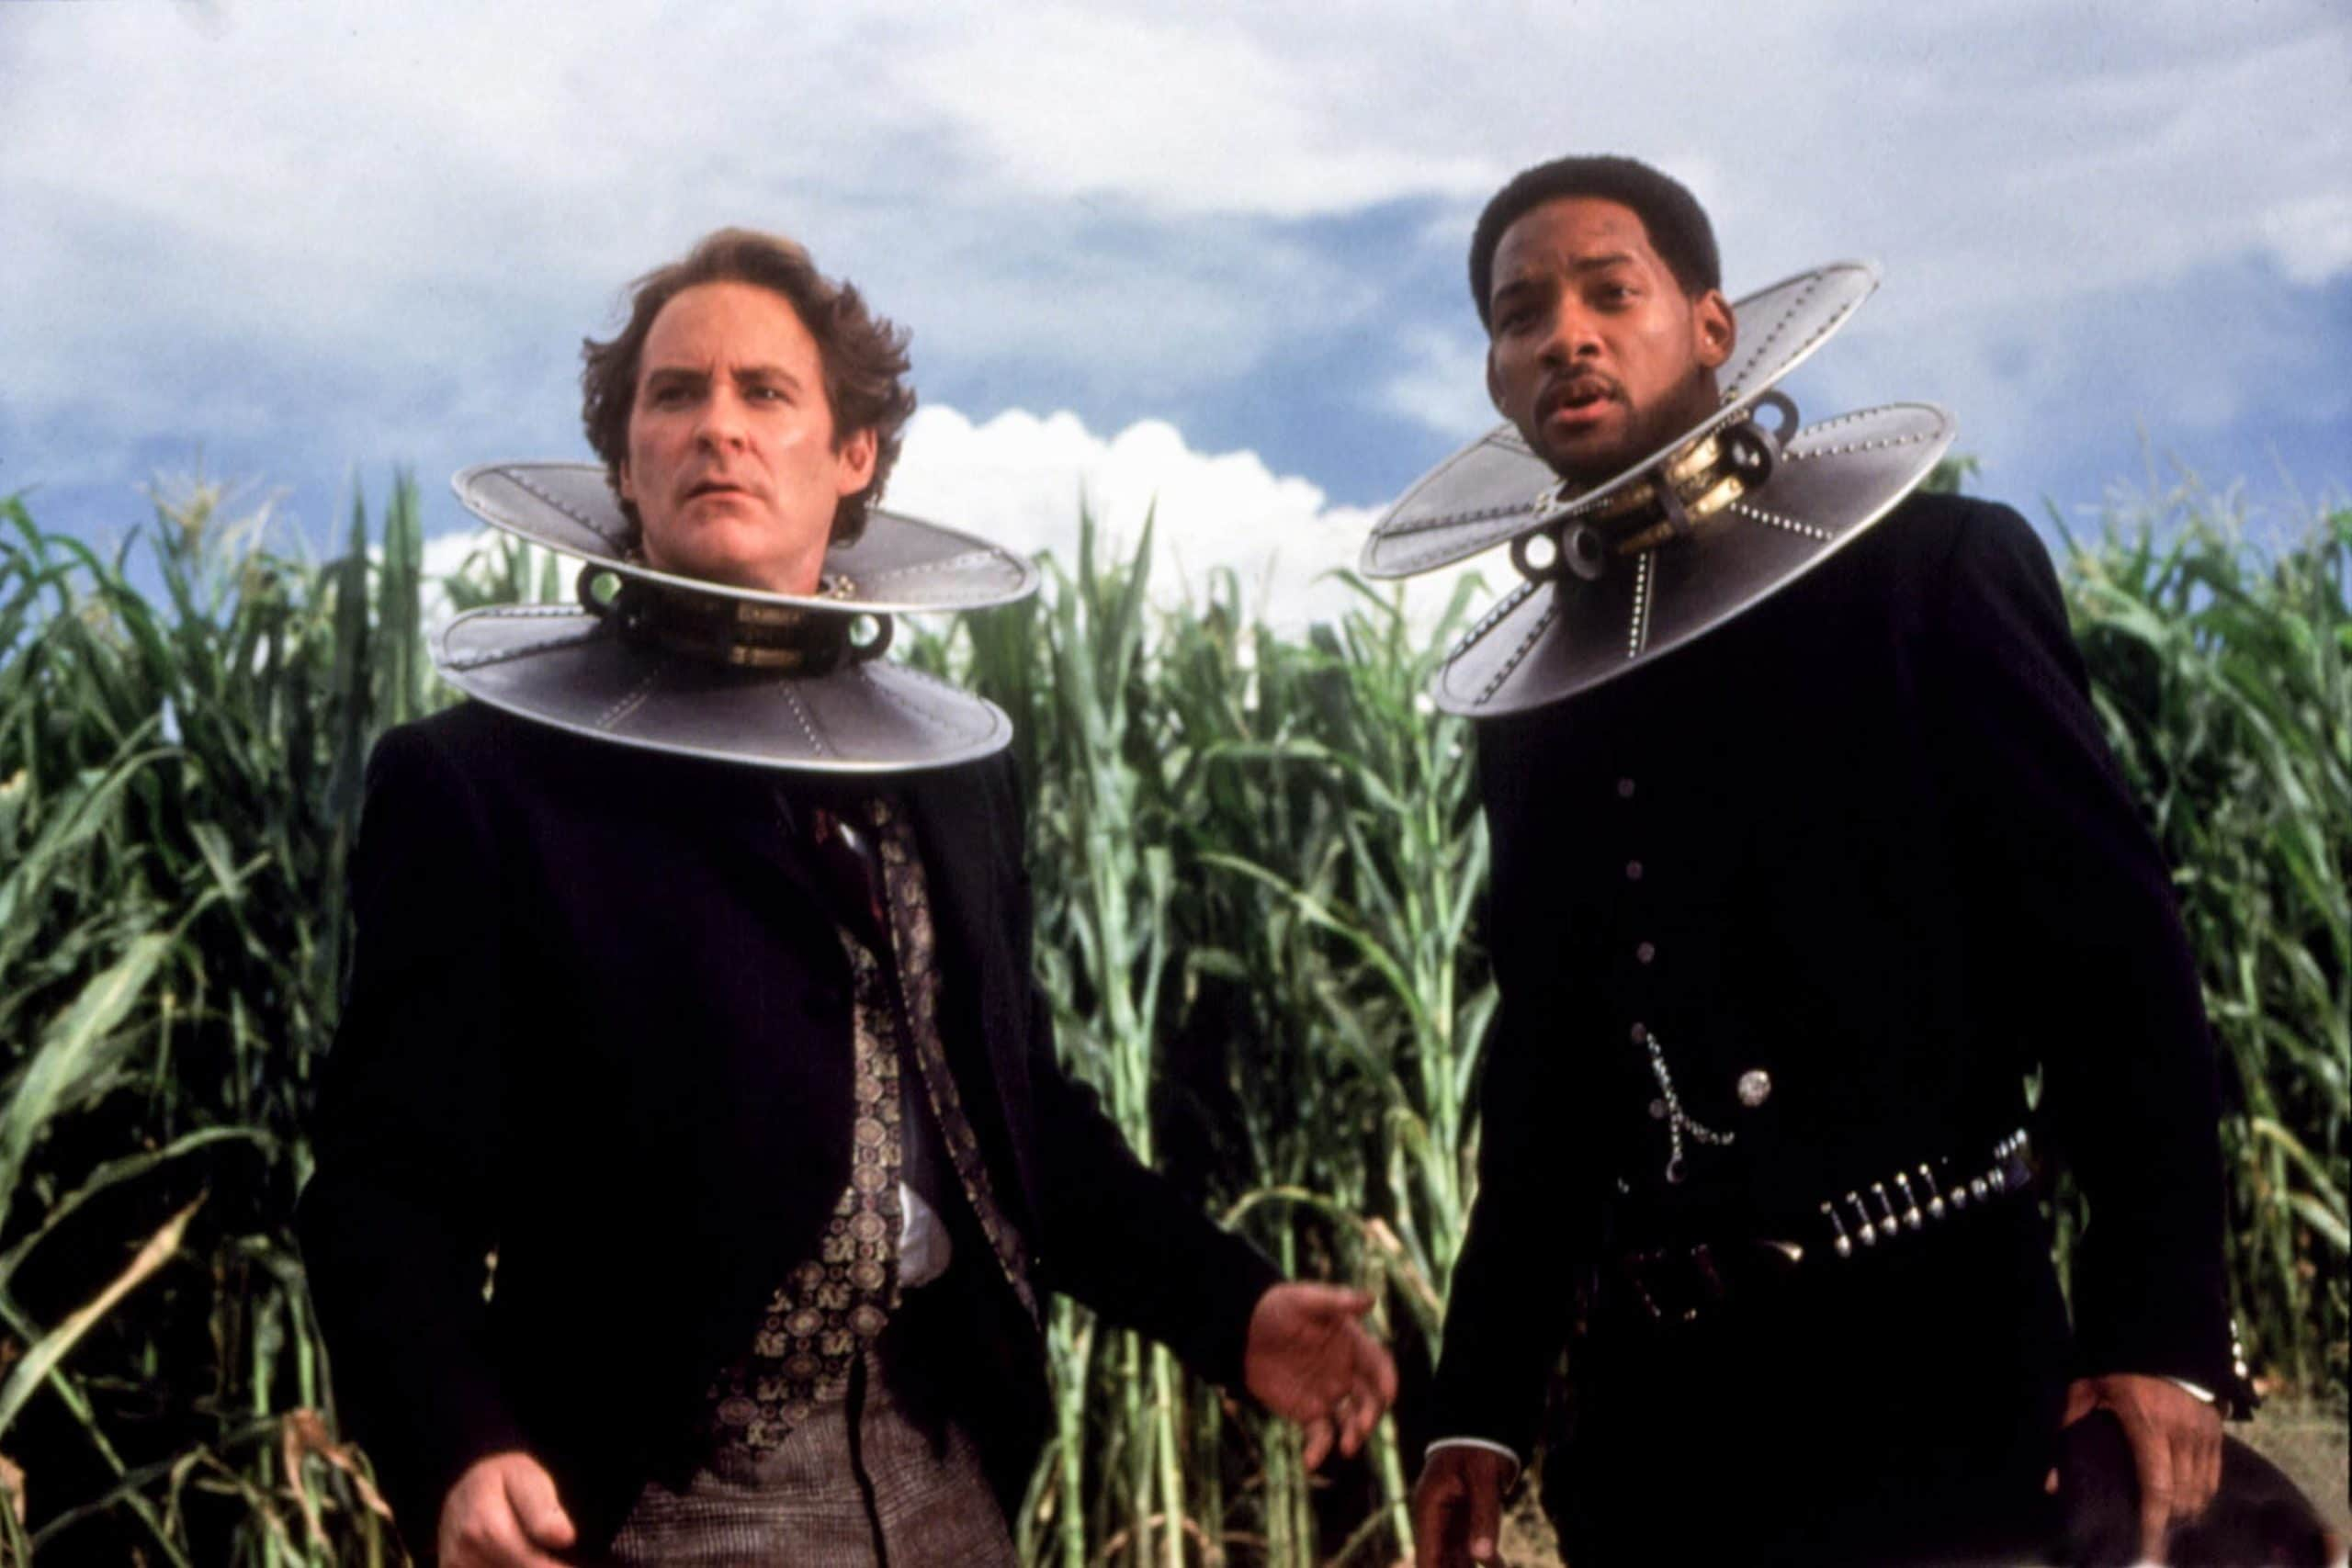 30 worst movies of the '80s, '90s, and 2000s 16